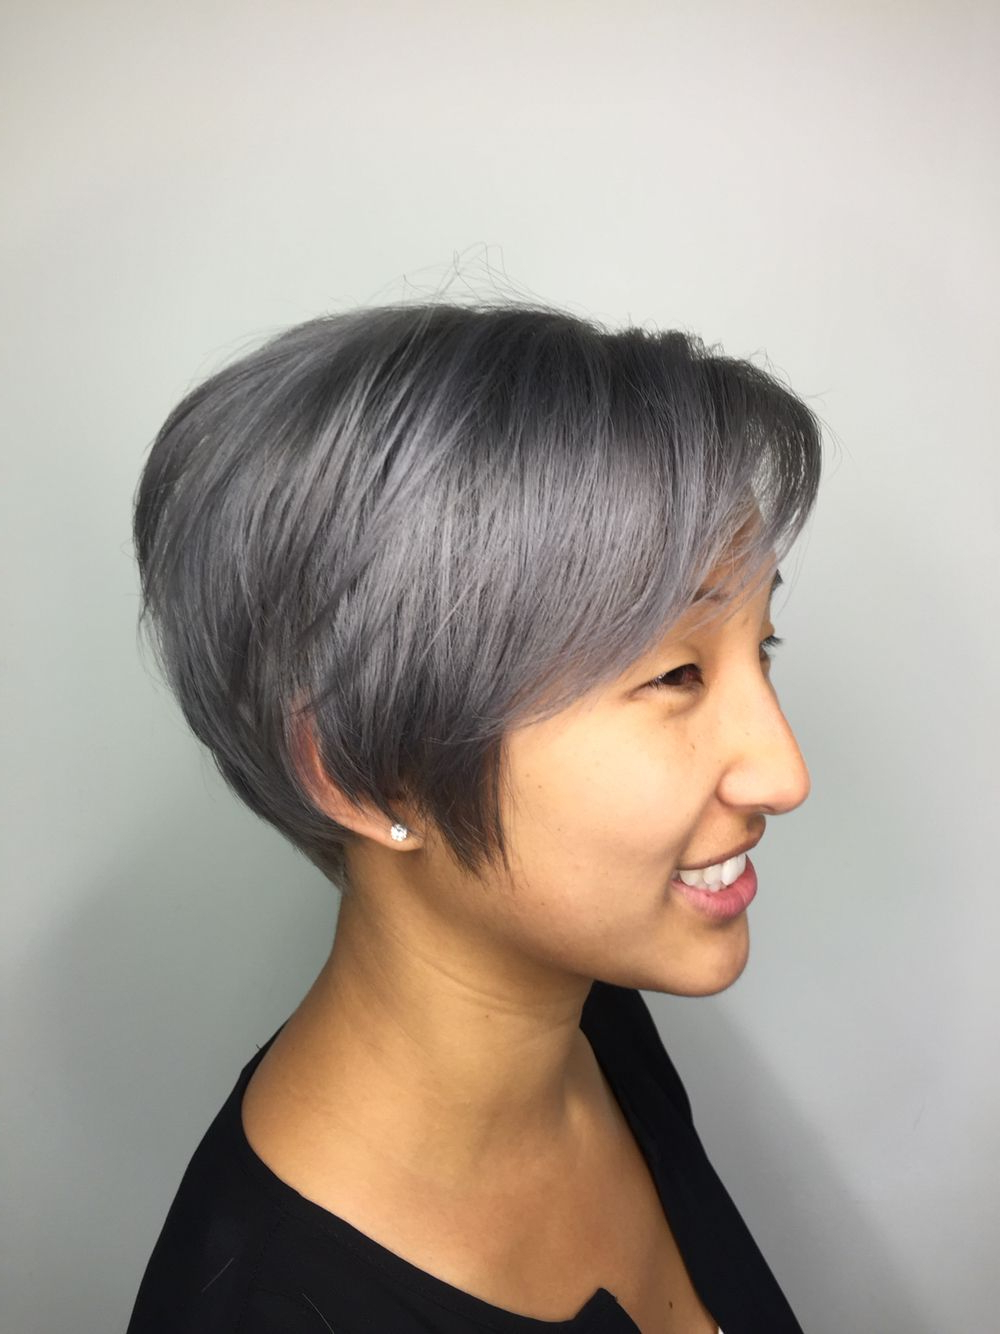 2020 Bold Asian Pixie Haircuts Inside Pin On Pixie Hairstyles (View 2 of 20)